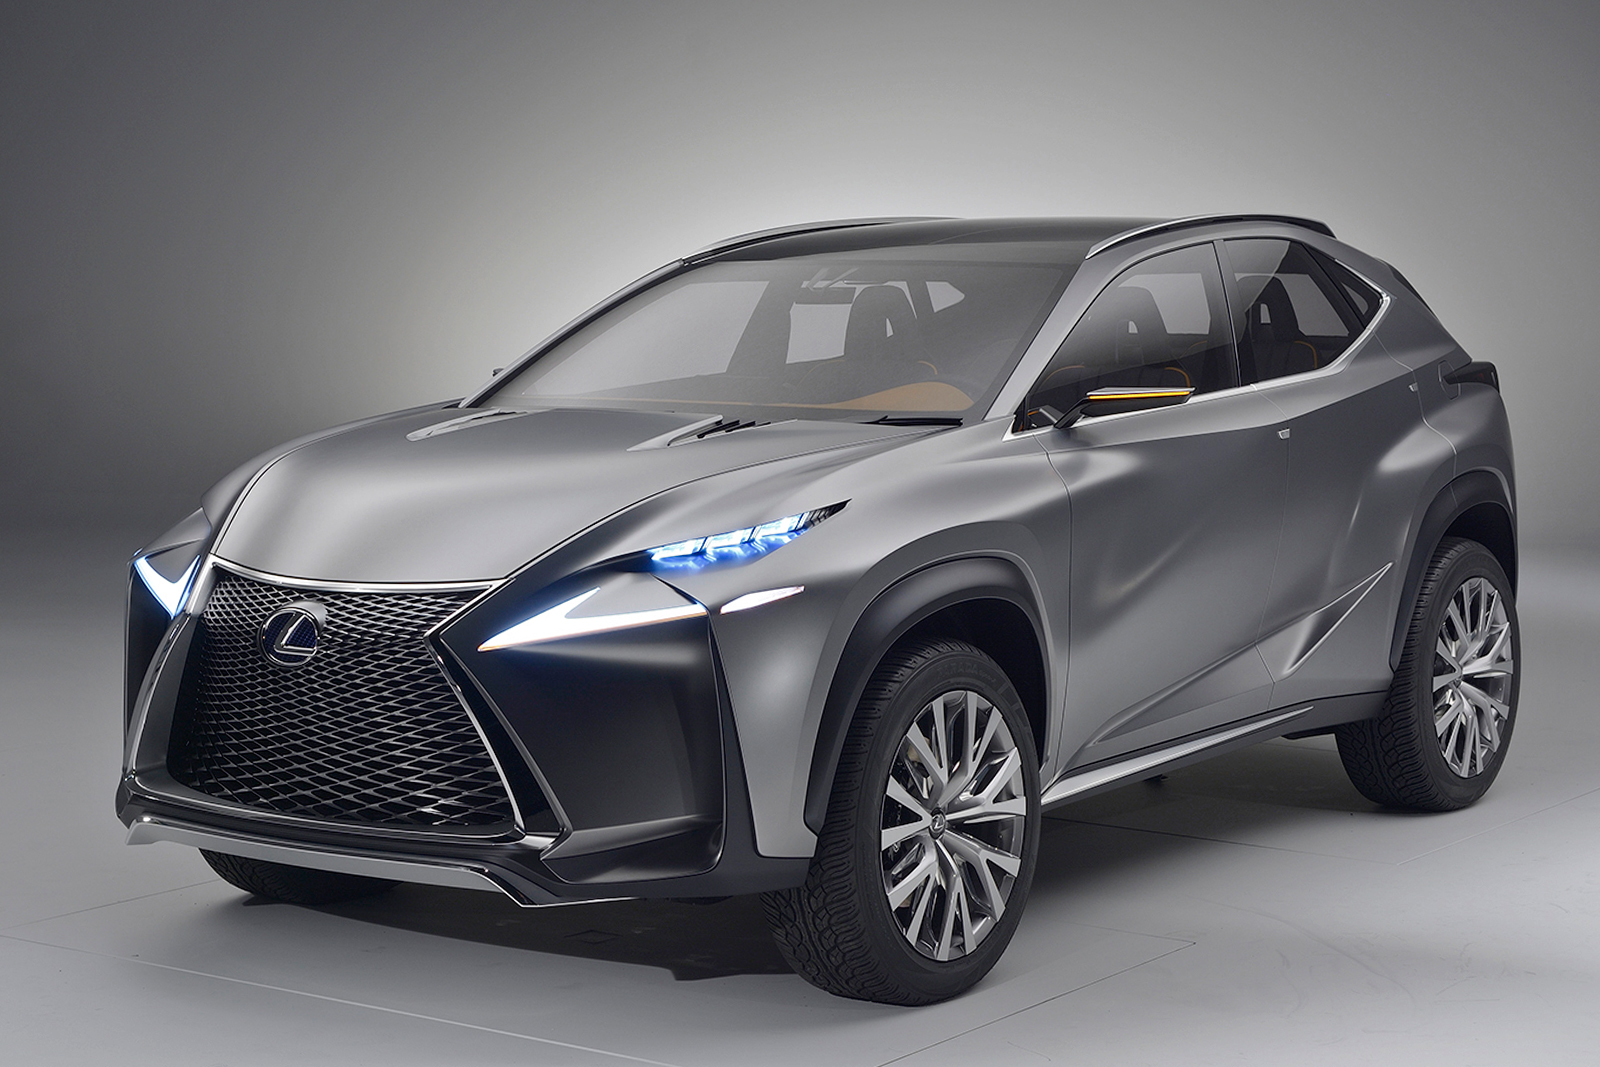 new lexus lf nx suv concept photo gallery car gallery premium luxury suvs autocar india. Black Bedroom Furniture Sets. Home Design Ideas